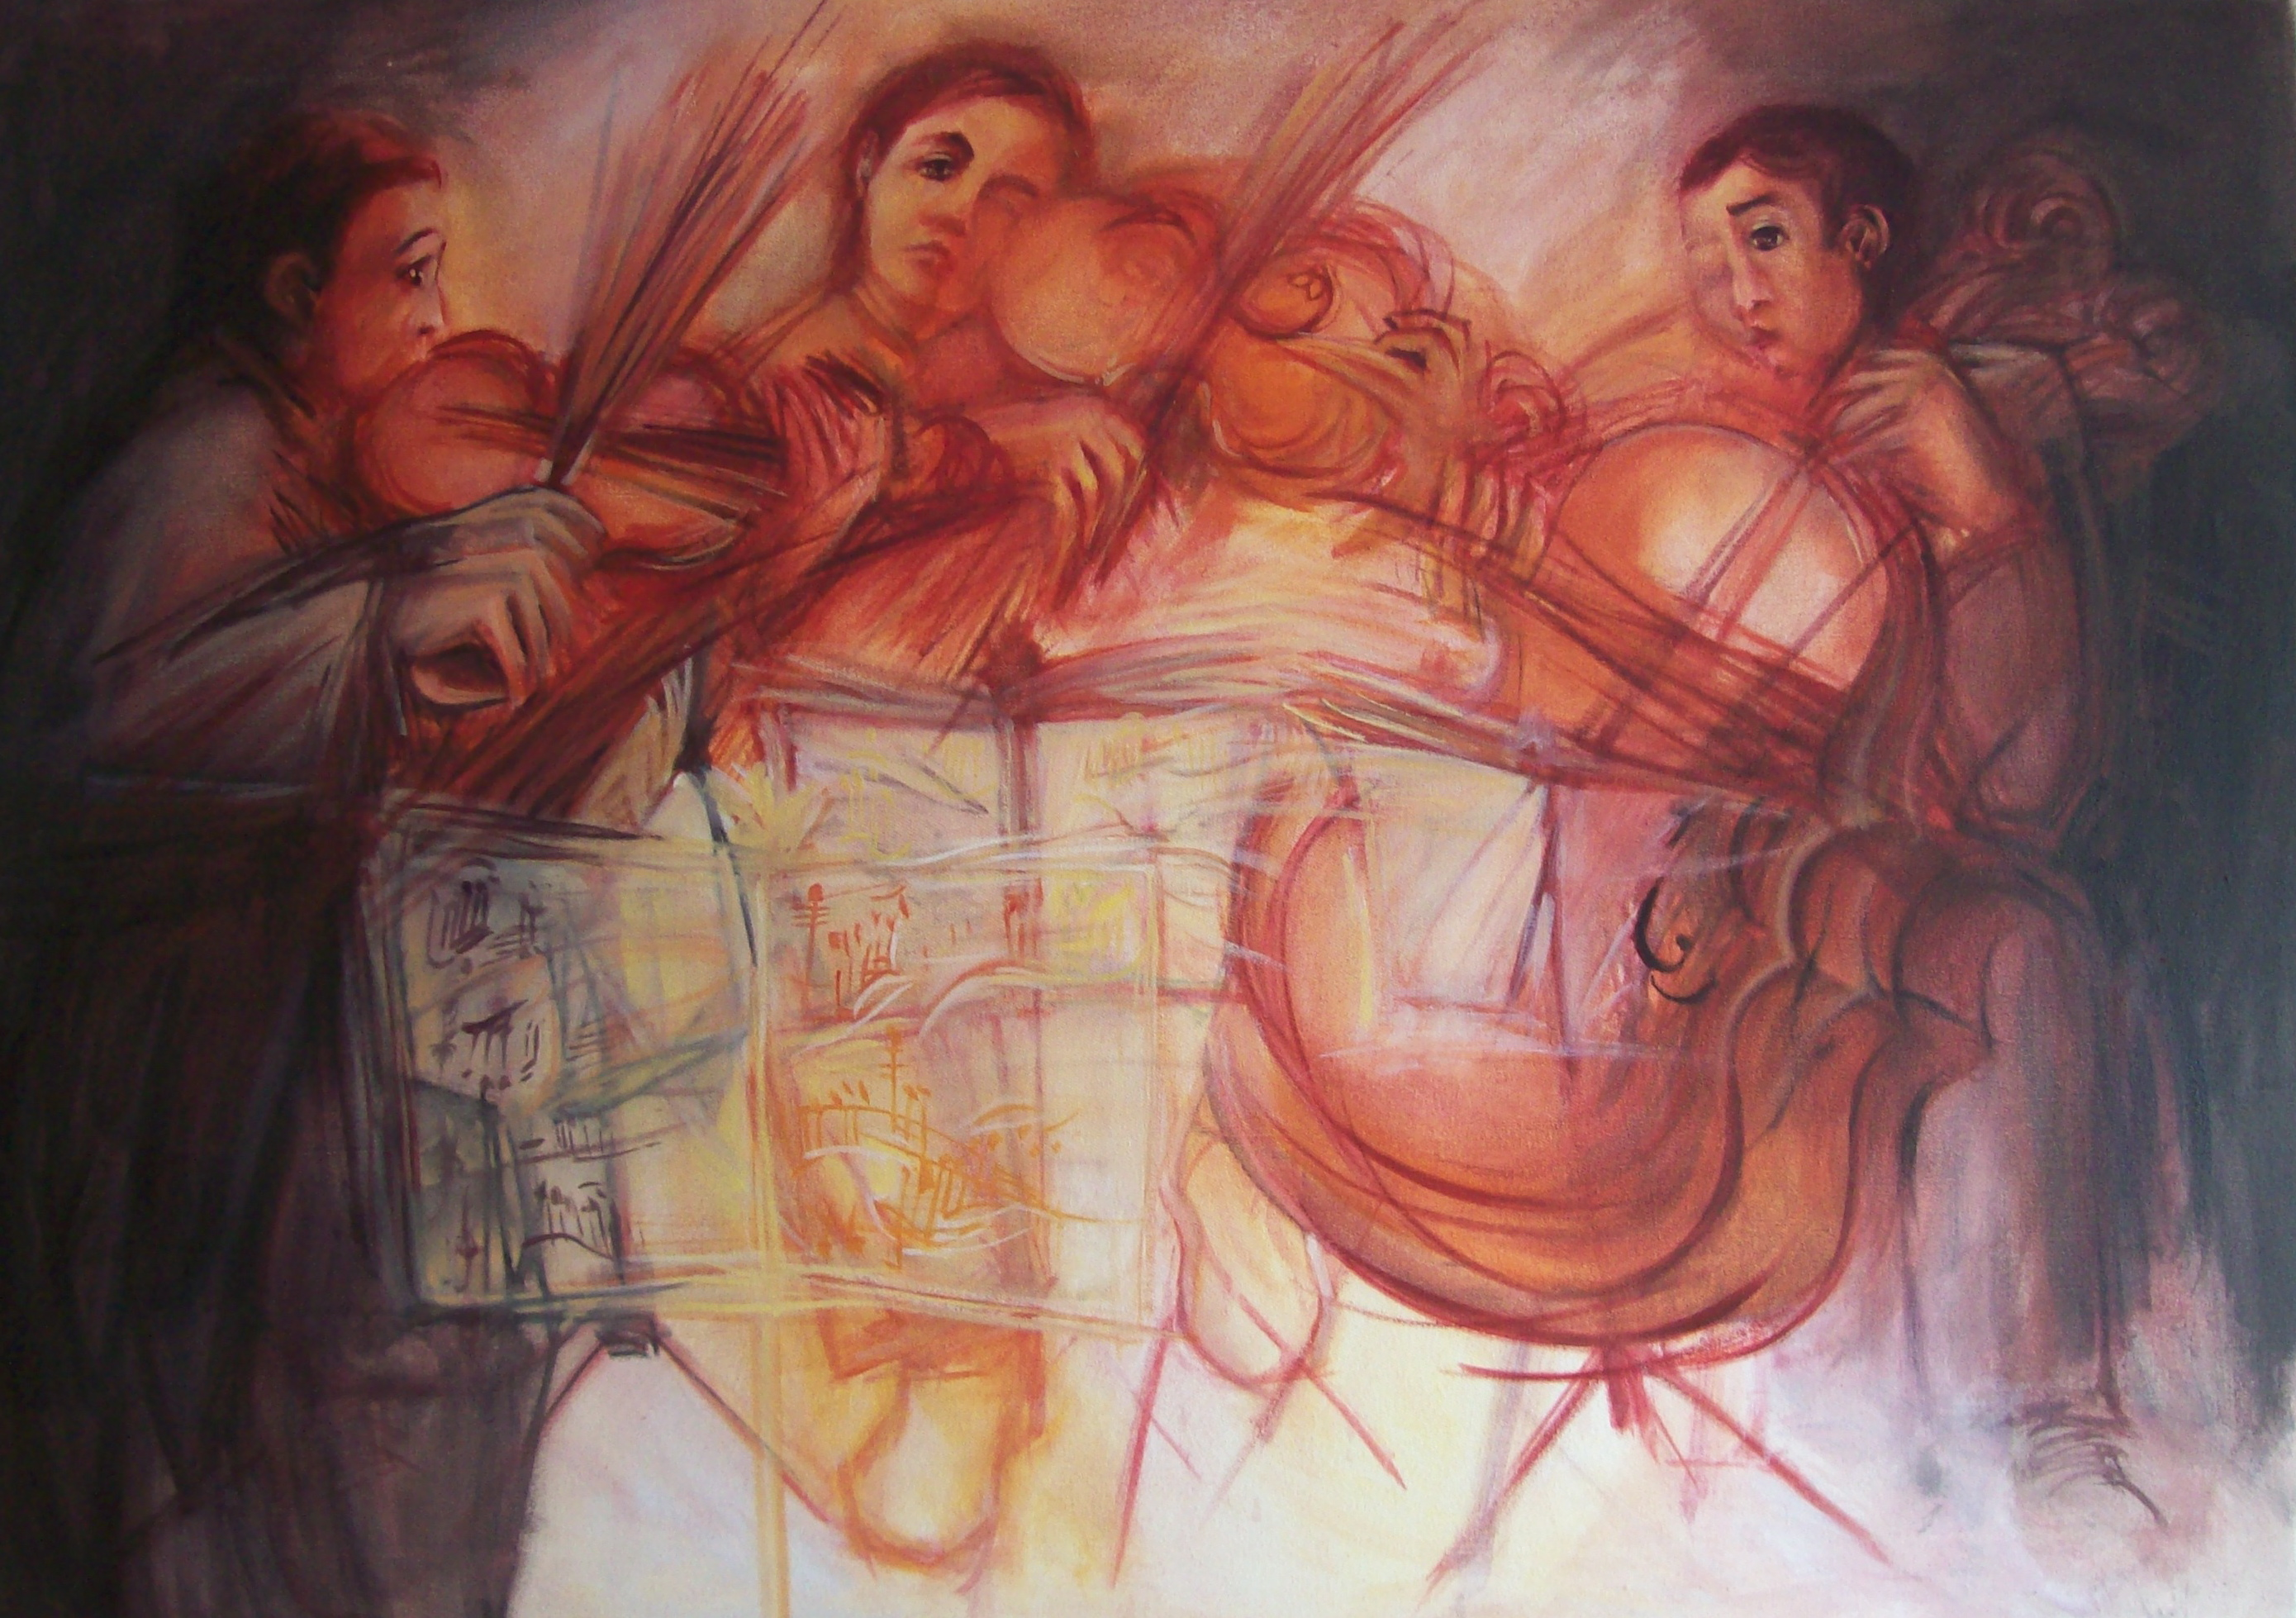 a painting of a chambre auchestra